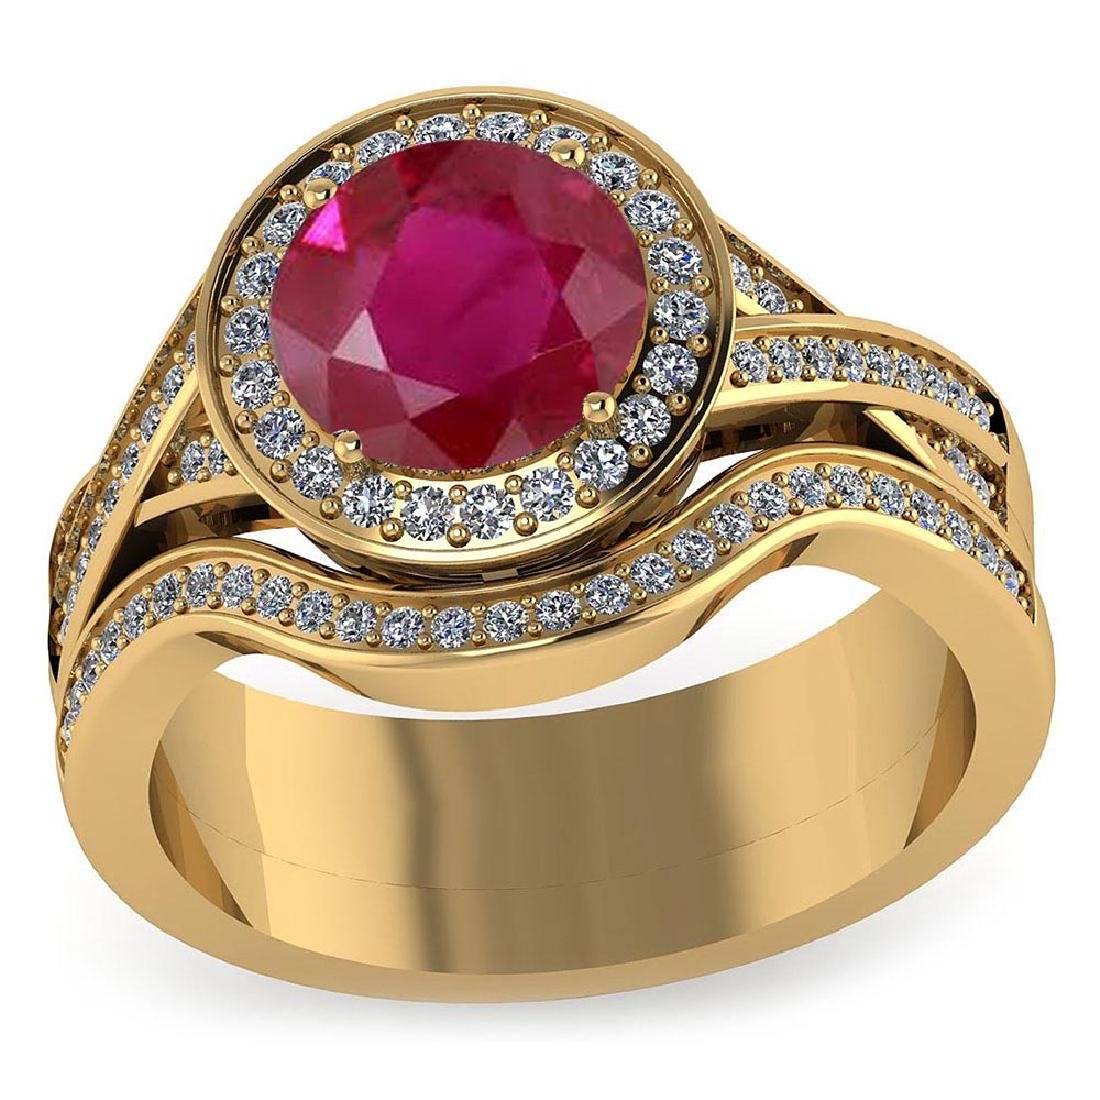 Certified 1.95 CTW Genuine Ruby And Diamond 14K Yellow